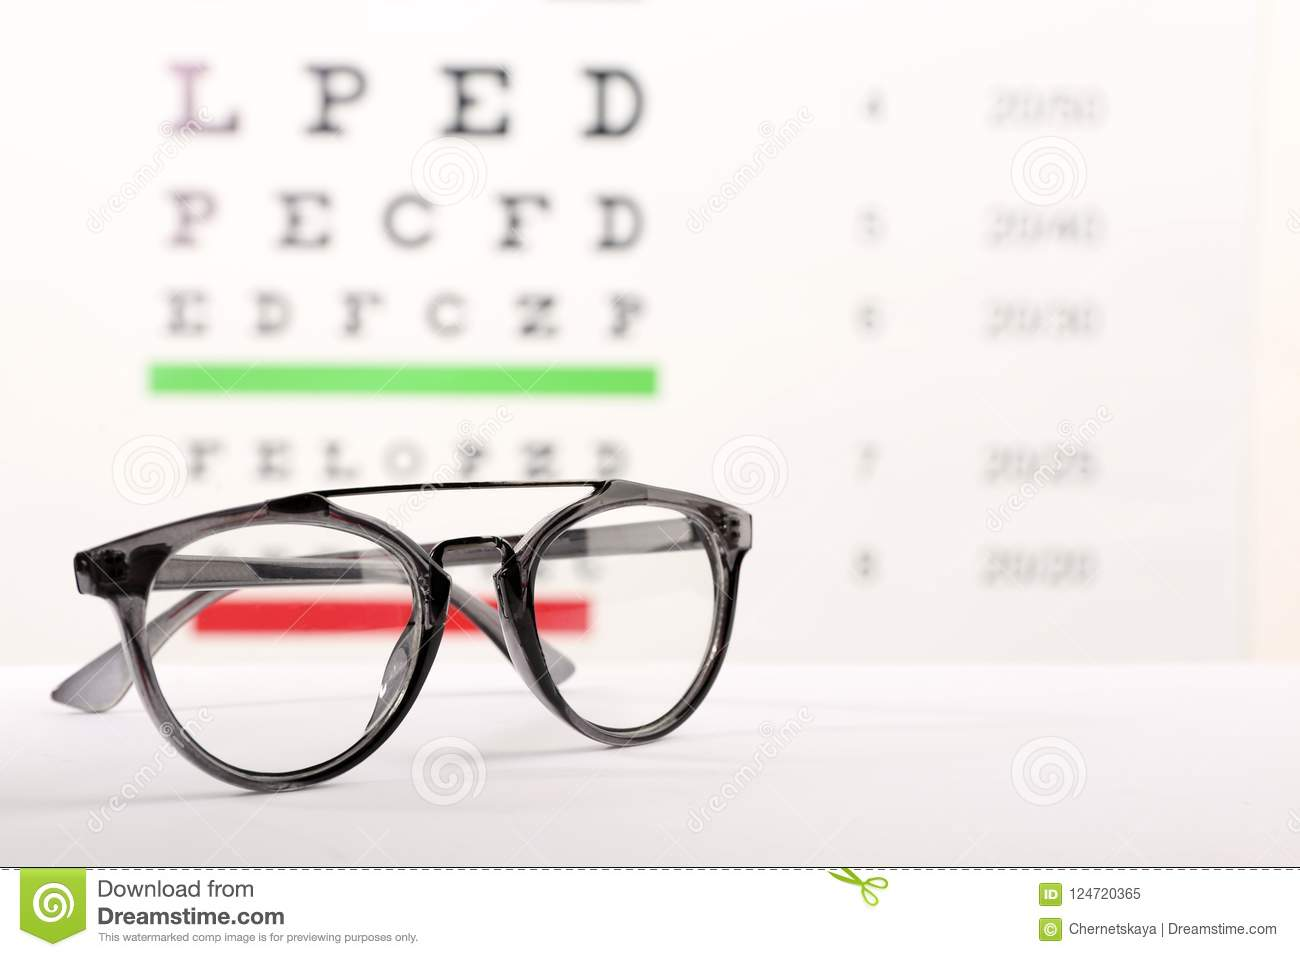 d87ab5b3c711 Glasses With Corrective Lenses On Table Stock Image - Image of ...